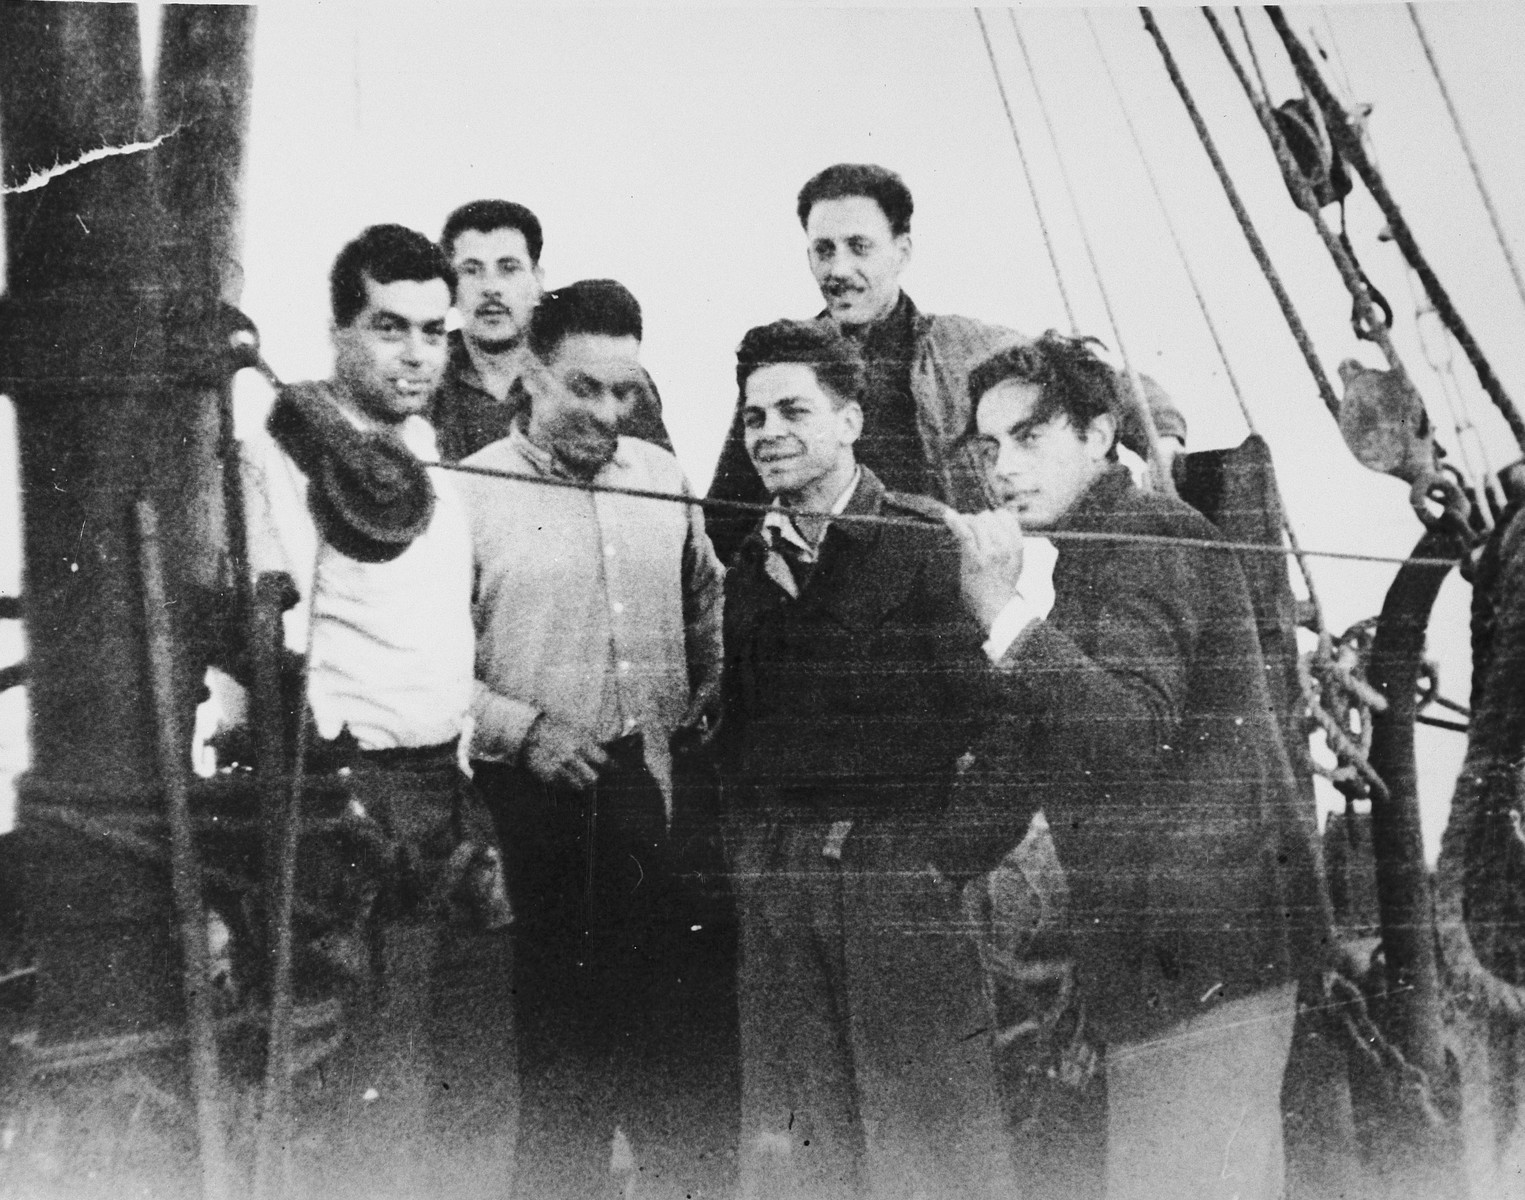 Former crew of the Pan Crescent and Pan York, many of whom had also been on the crew of The Exodus, sail from Cyprus to Caesaria on board the Nesher.   The first man in the back row has been identified as David Lowenthal.